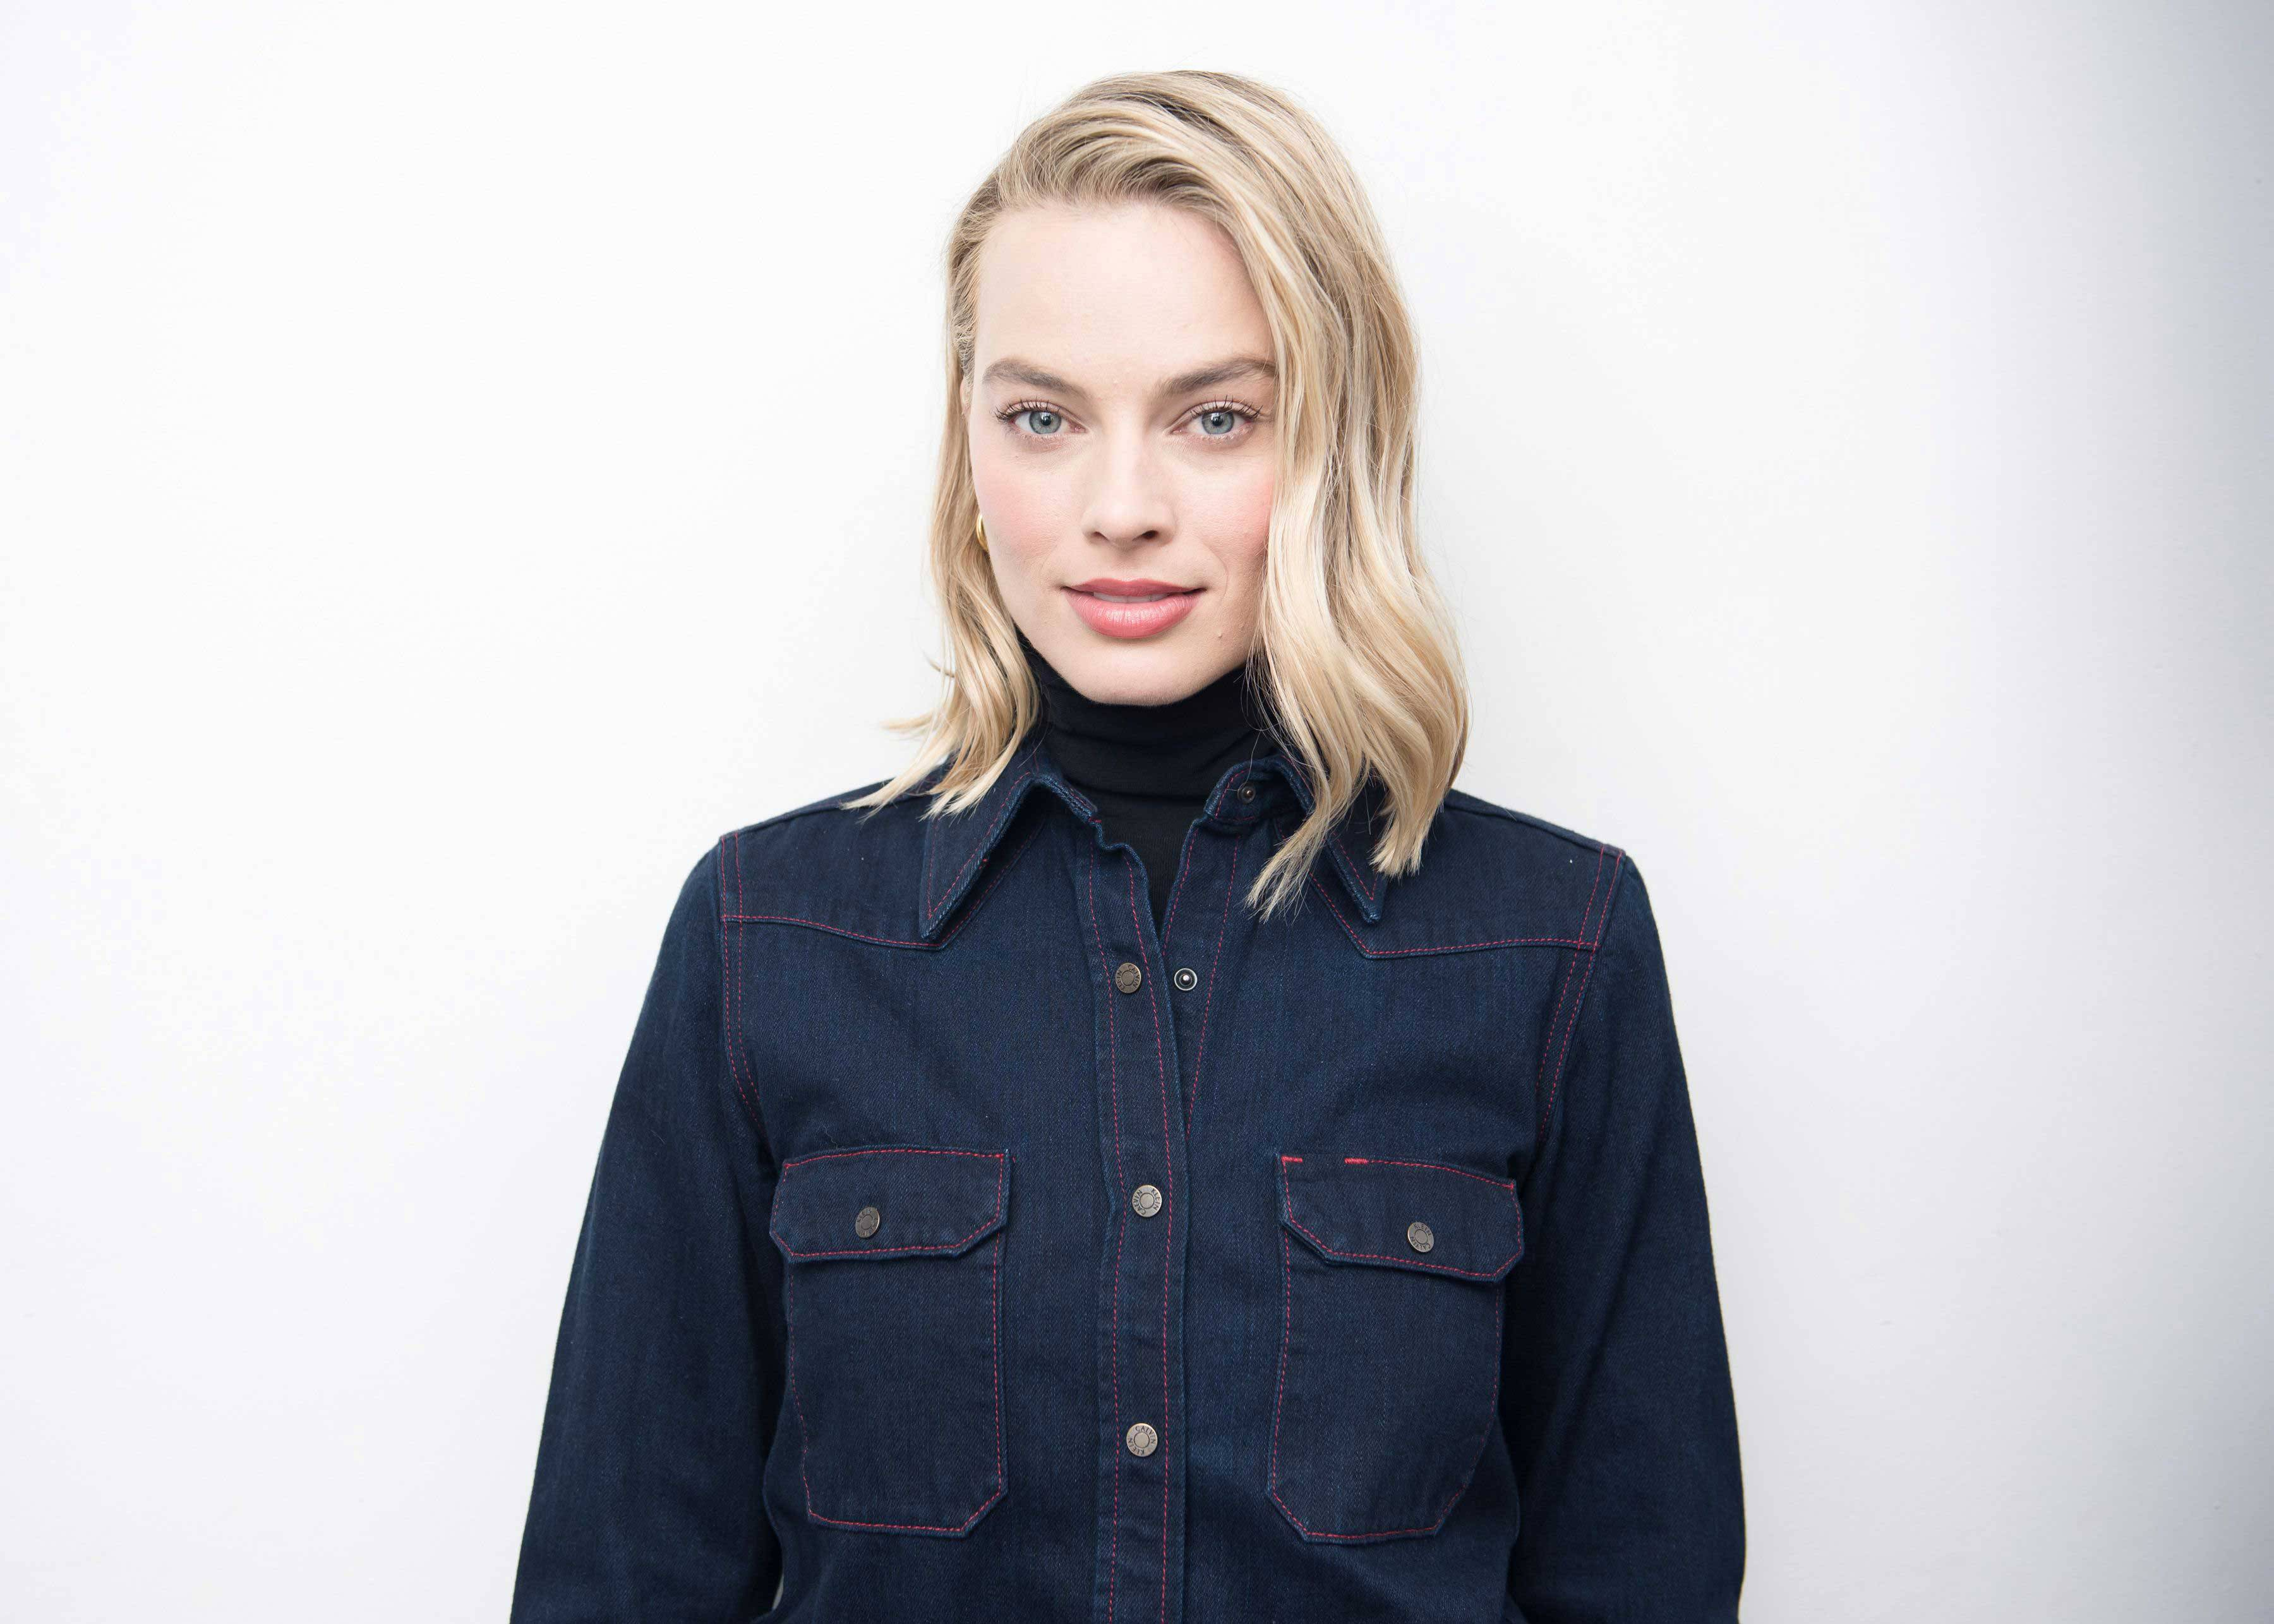 Margot Robbie Wallpapers, Images, Backgrounds, Photos and Pictures